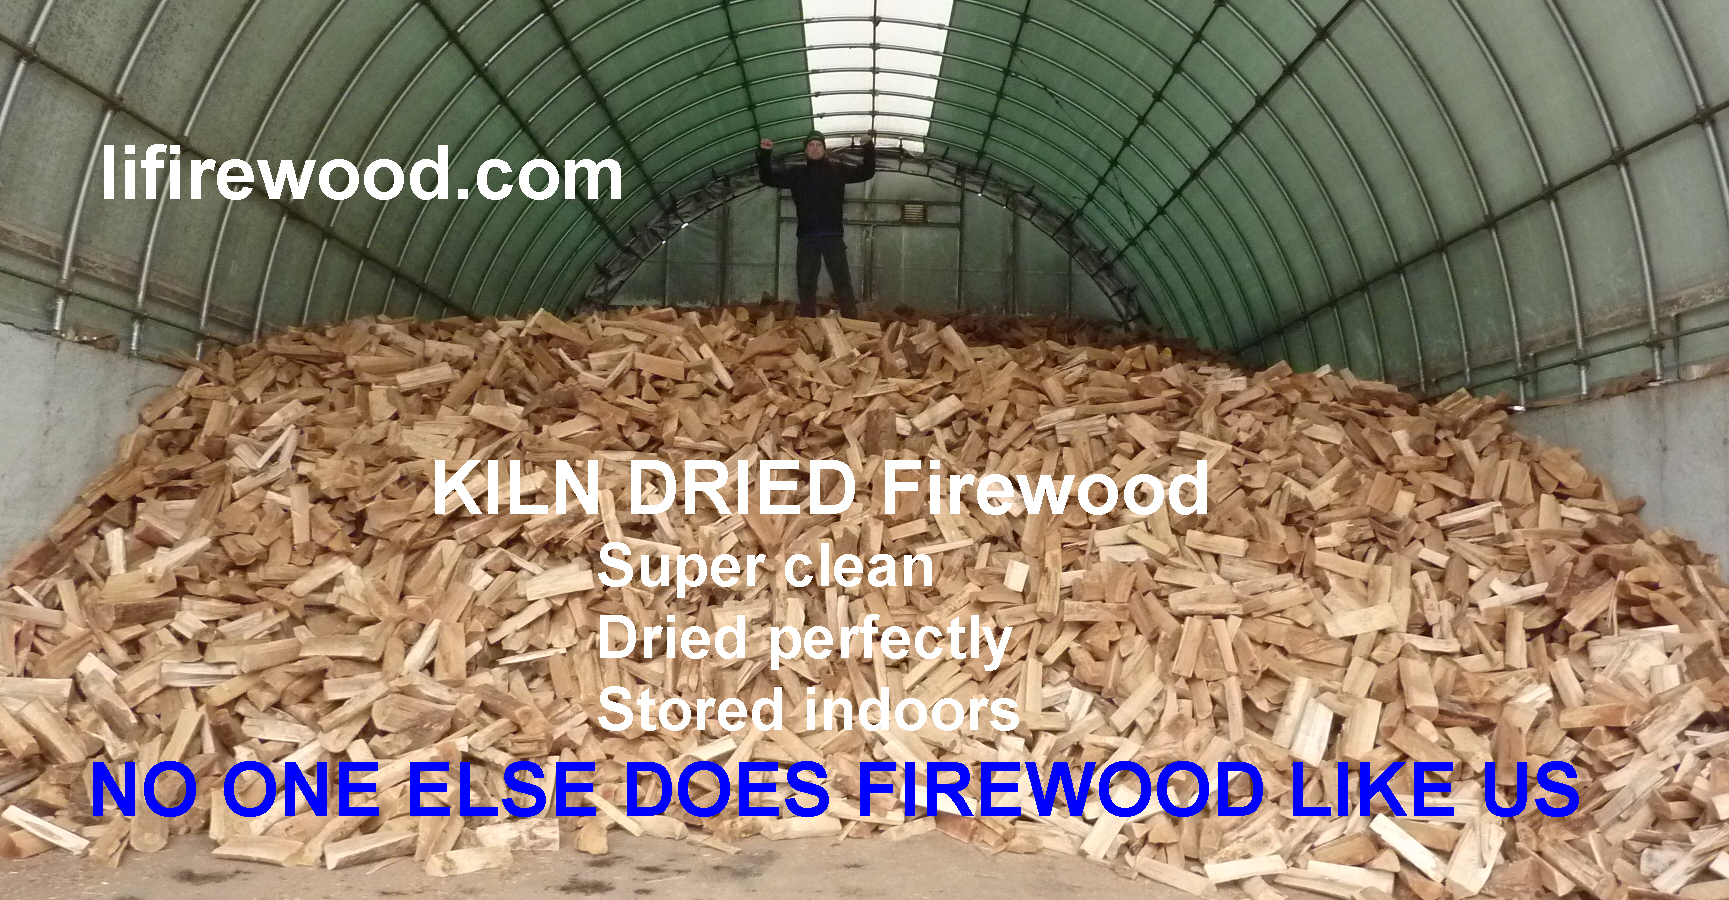 We're firewood experts